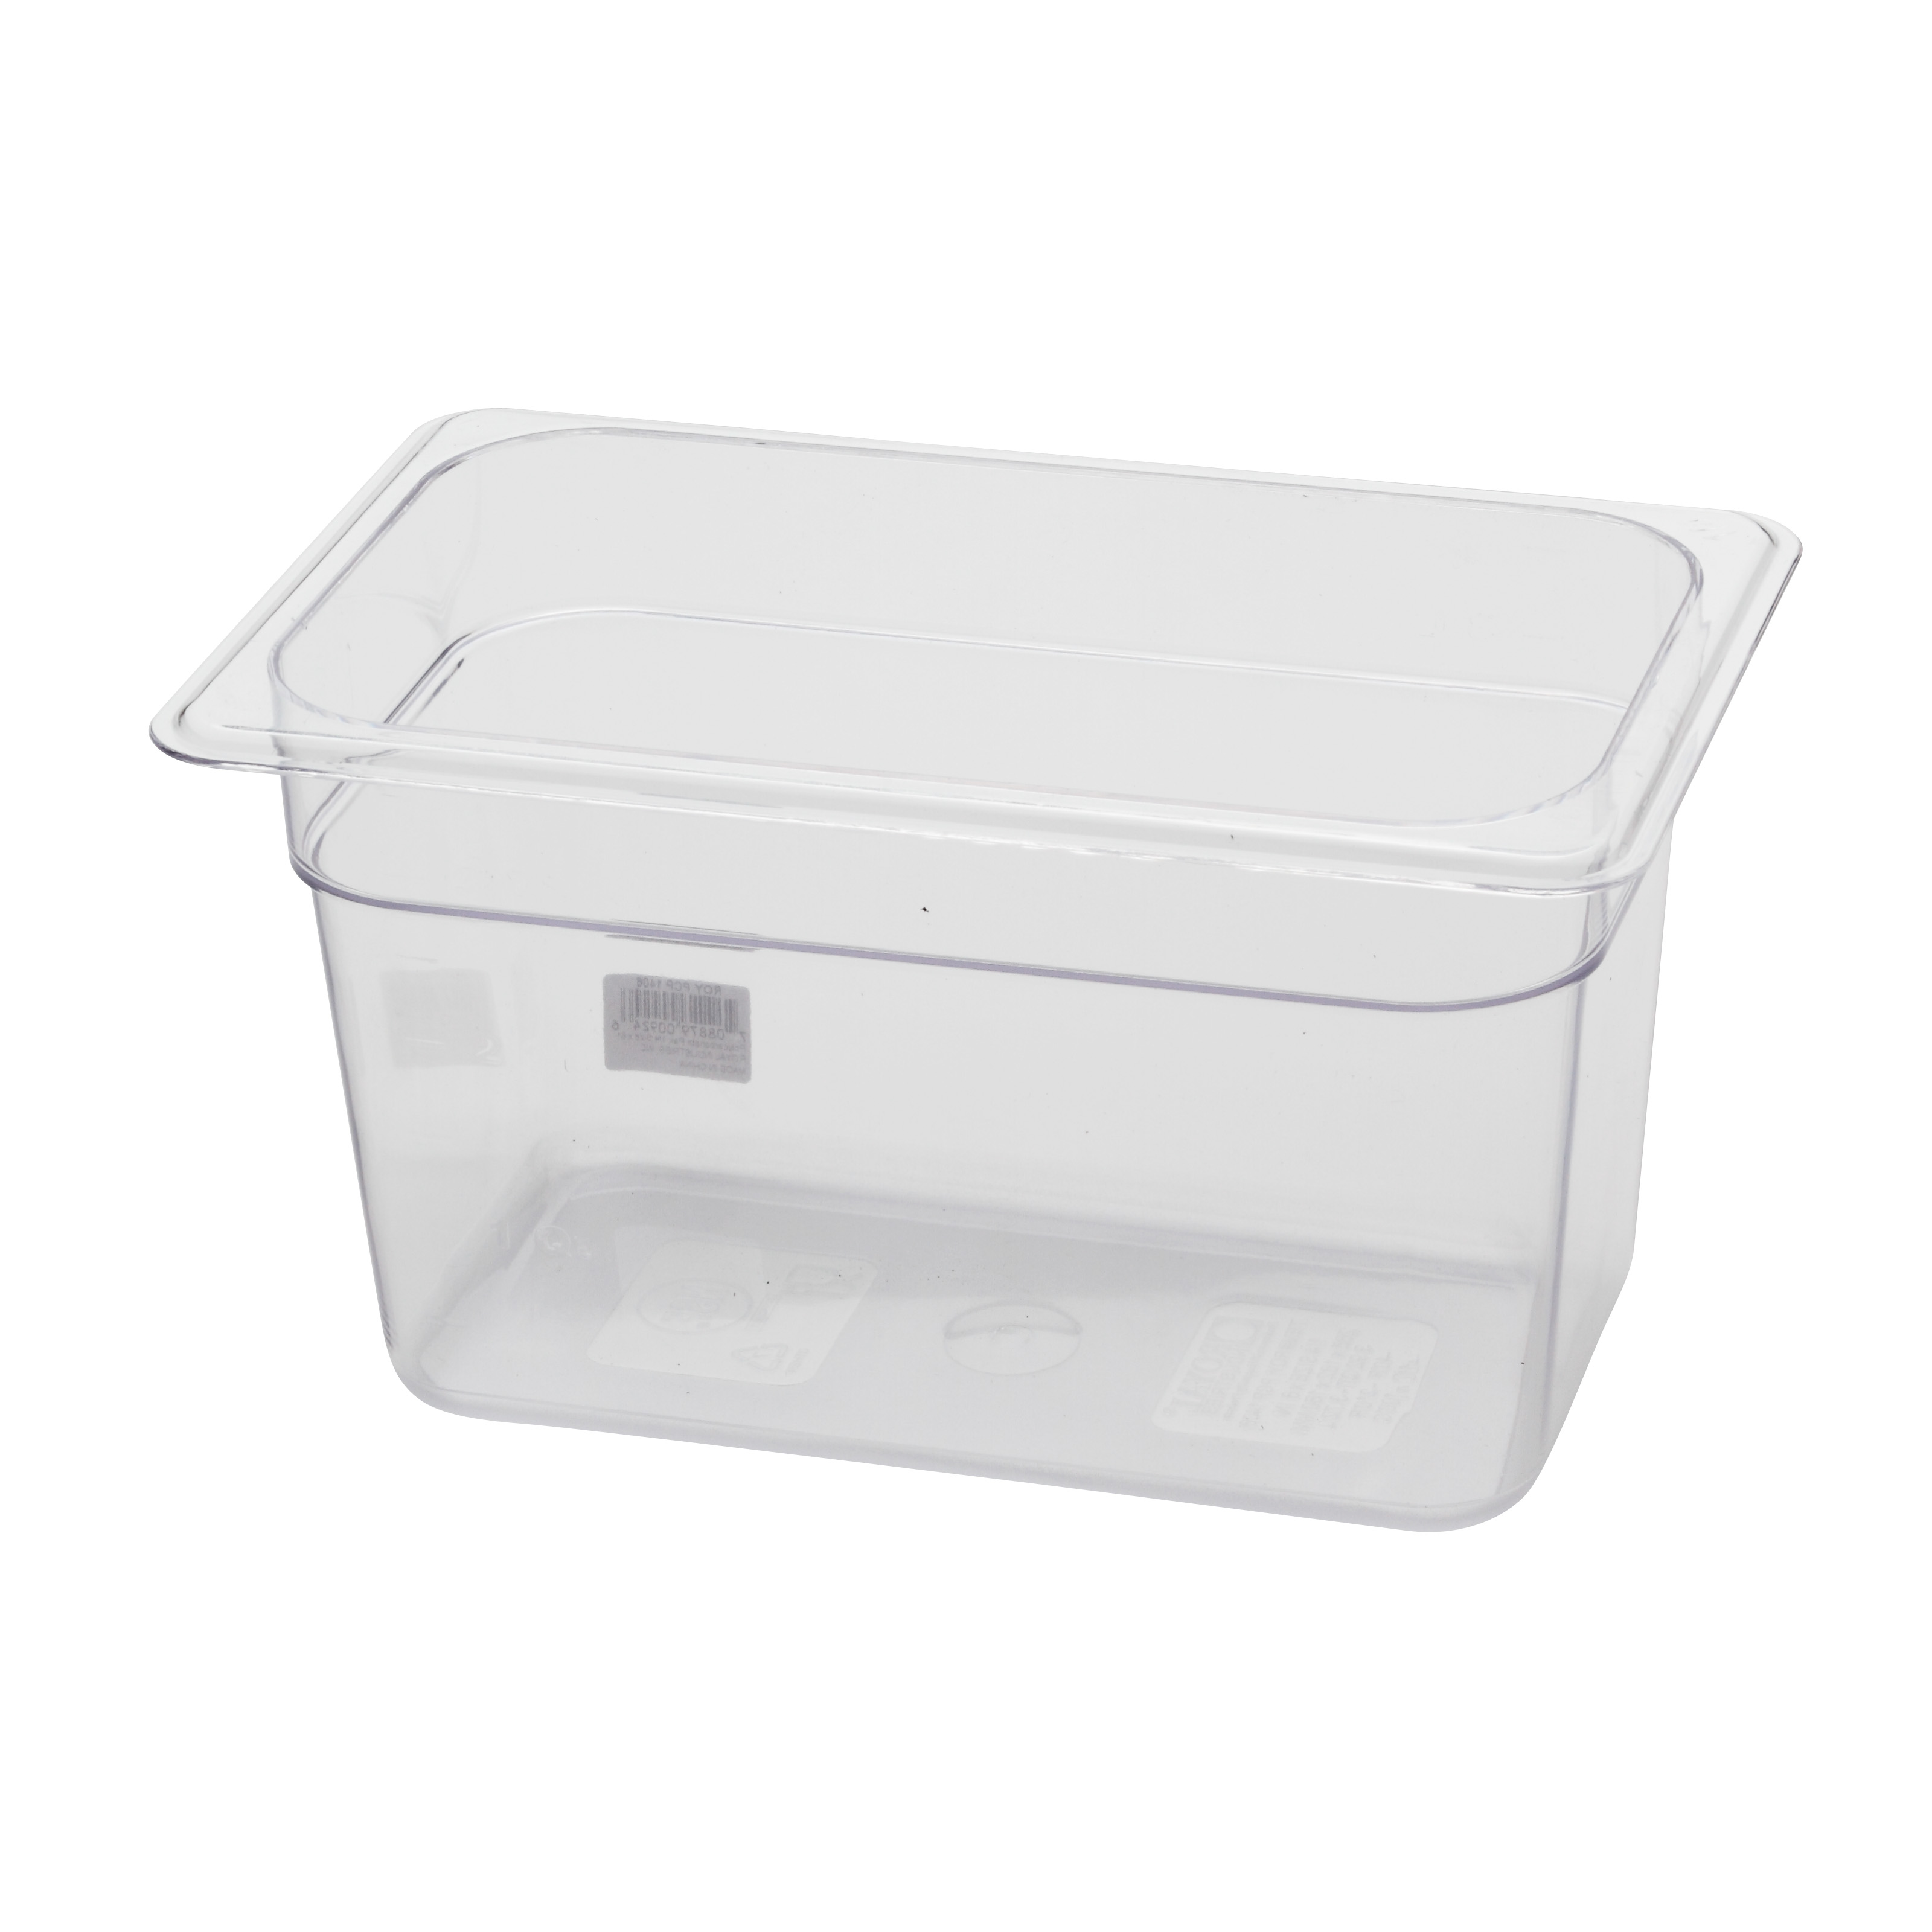 Royal Industries ROY PCP 1406 food pan, plastic